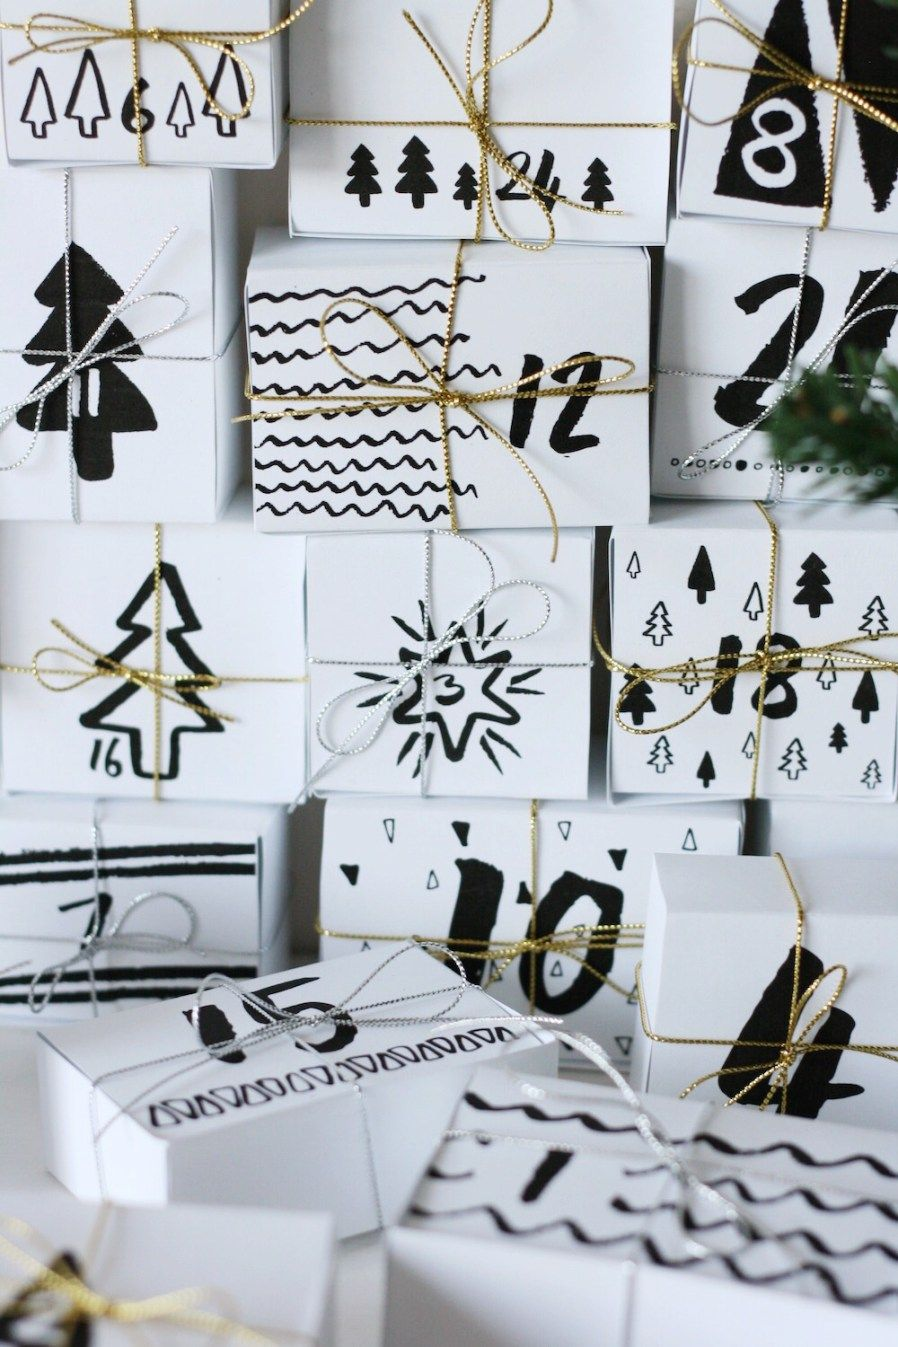 Advent calendar diy printable free download advent calendars advent calendar diy printable free download pure sweet joy solutioingenieria Image collections